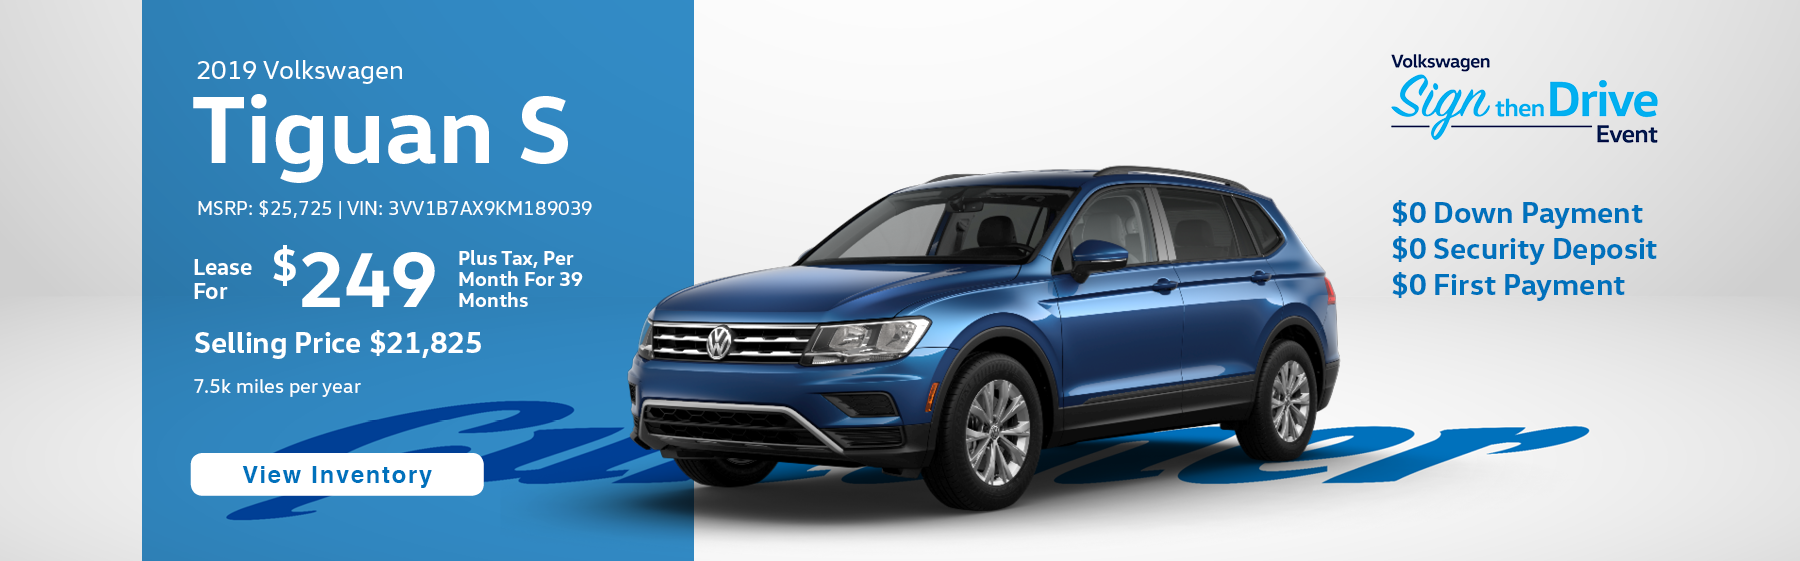 Lease the 2019 Tiguan S for $249 per month, plus tax for 39 months.